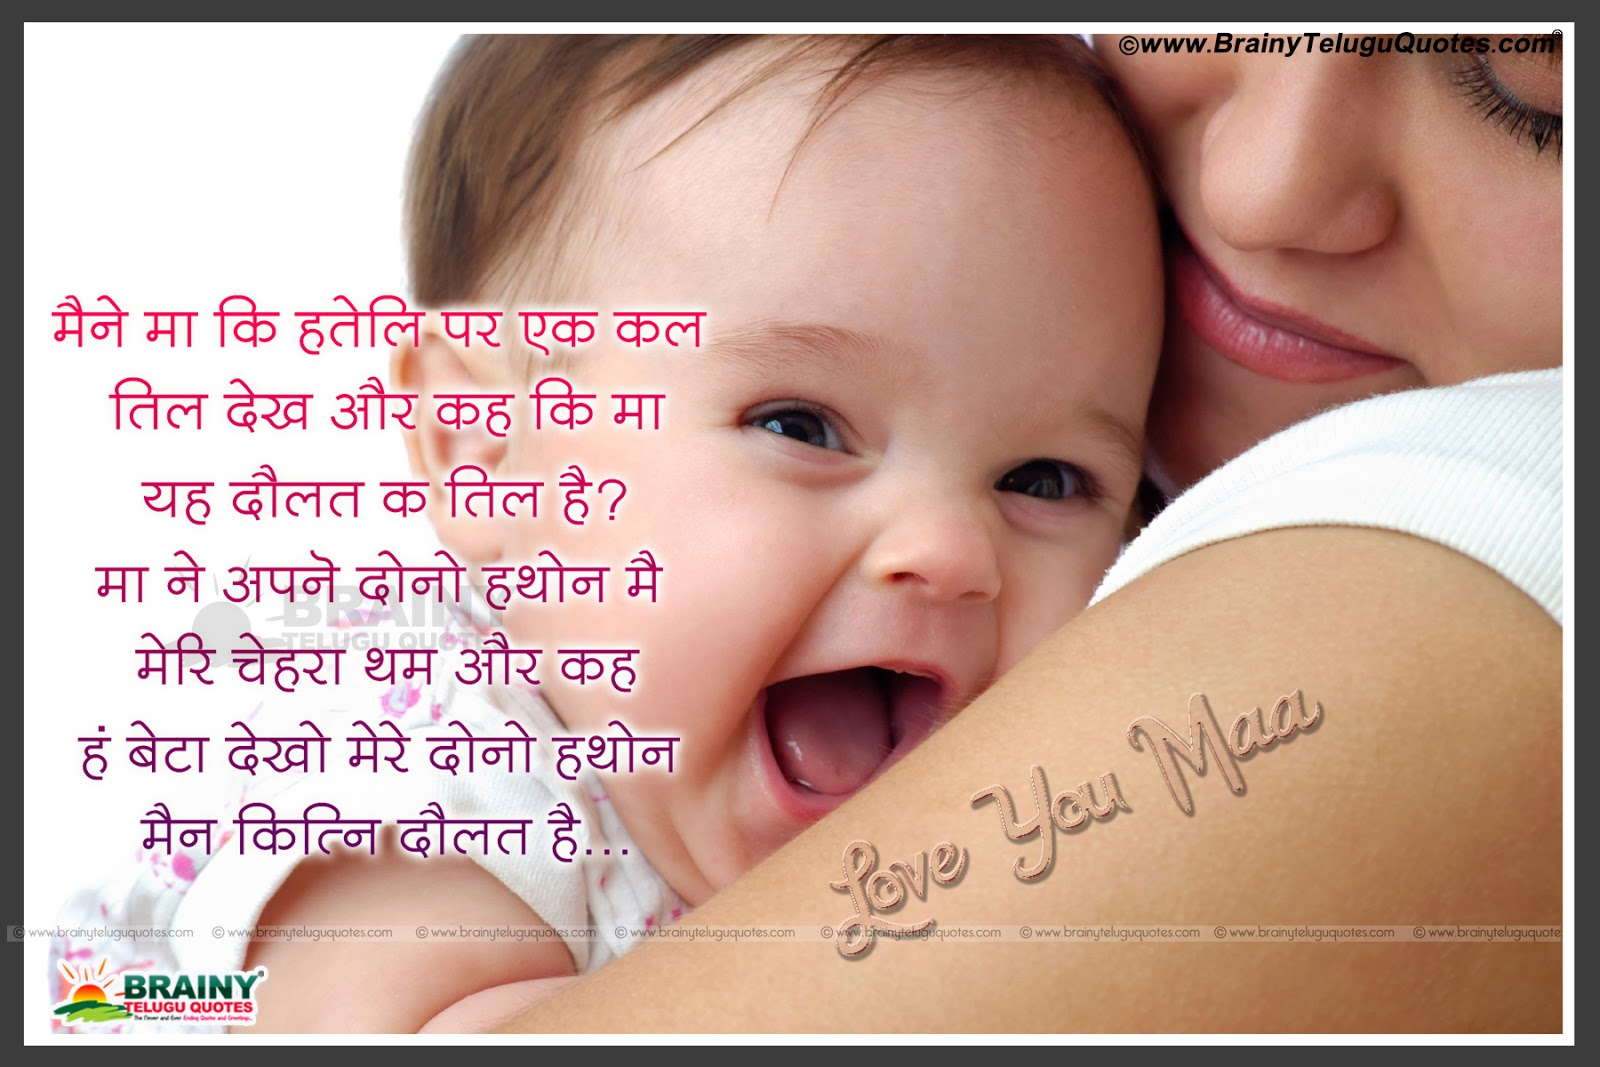 Mom To Son Quotes Emotional Hindi Lines Quotes Messages From A Mother To Son With